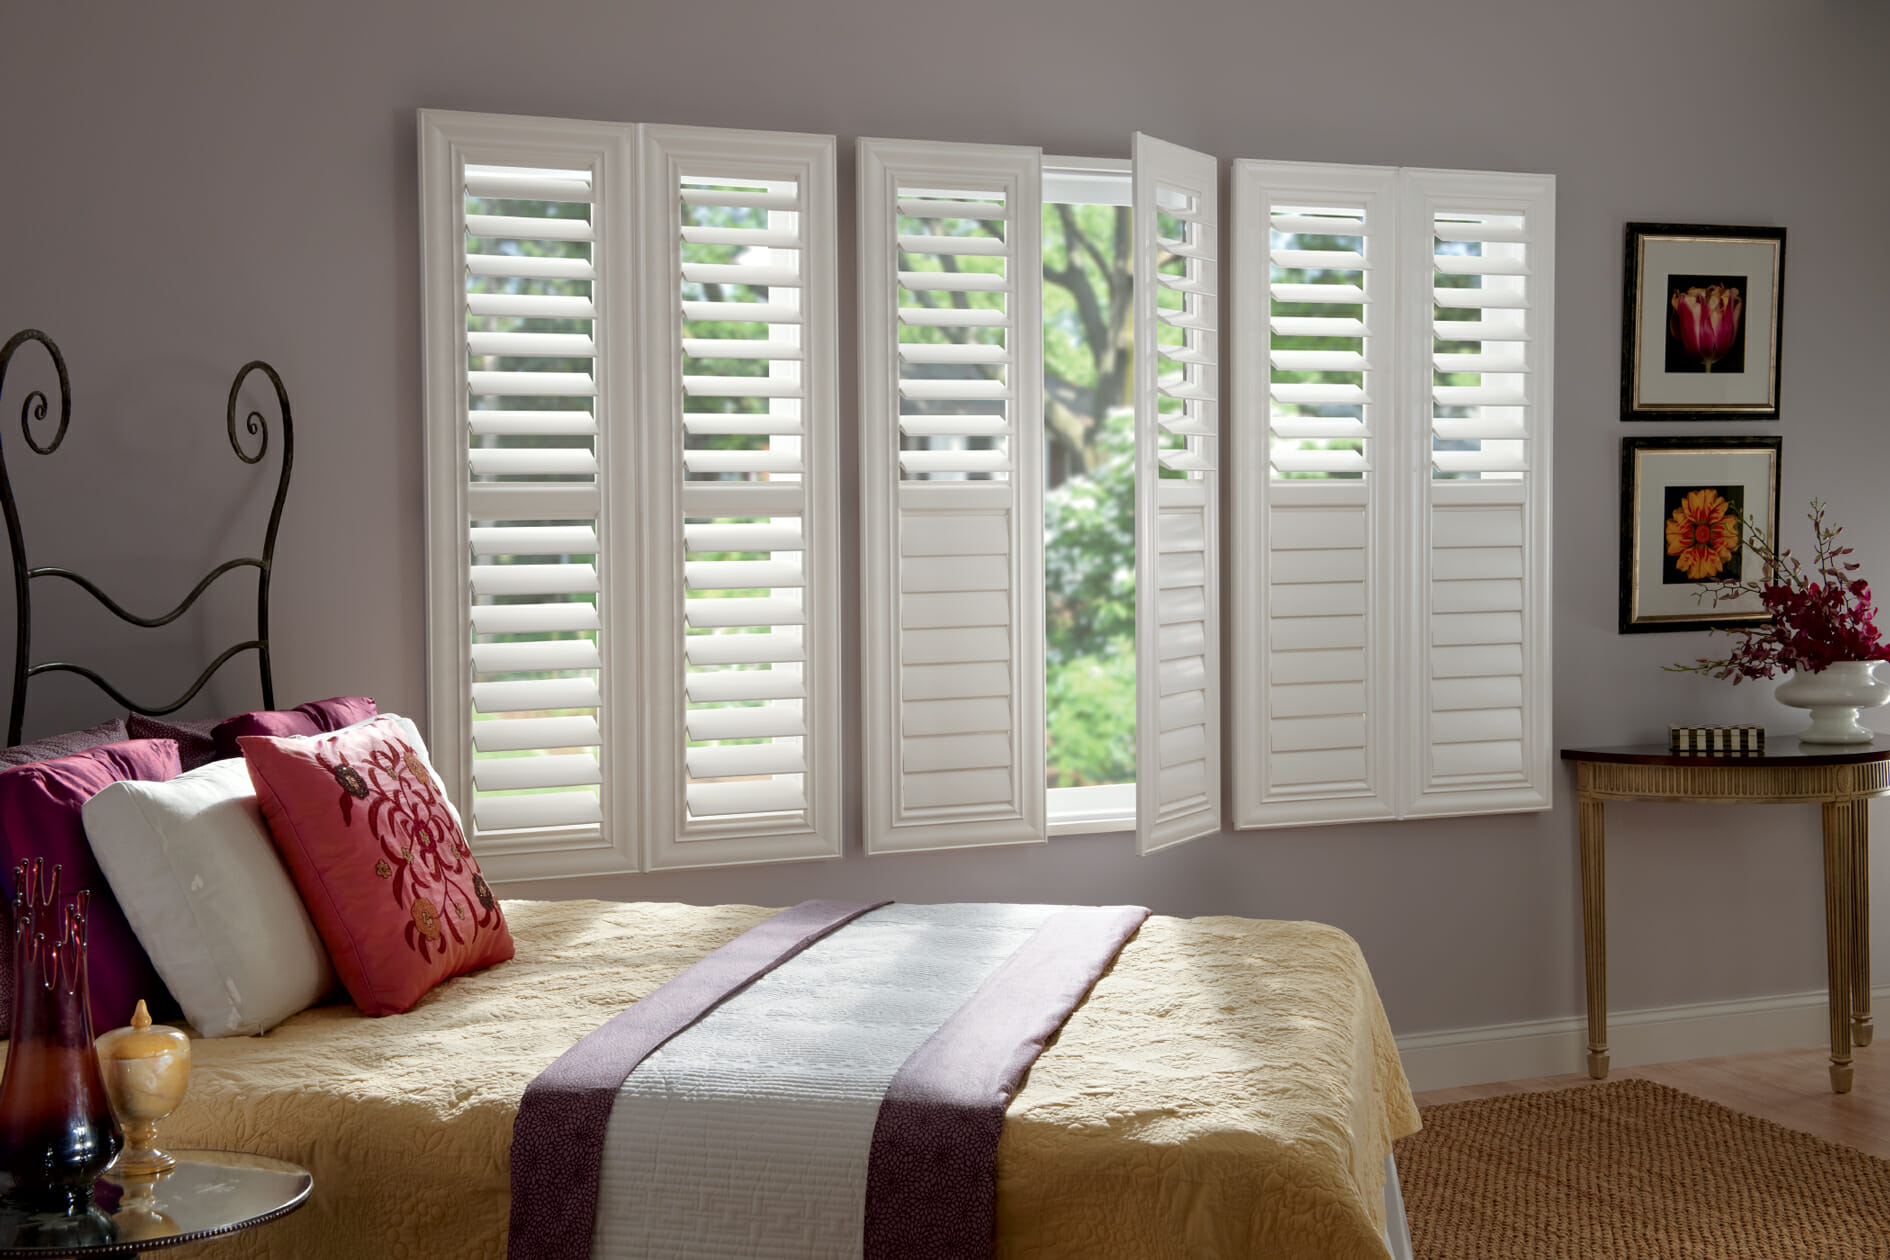 window shutters alibaba blinds suppliers showroom plantation pvc manufacturers from china shutter and factory at standard com